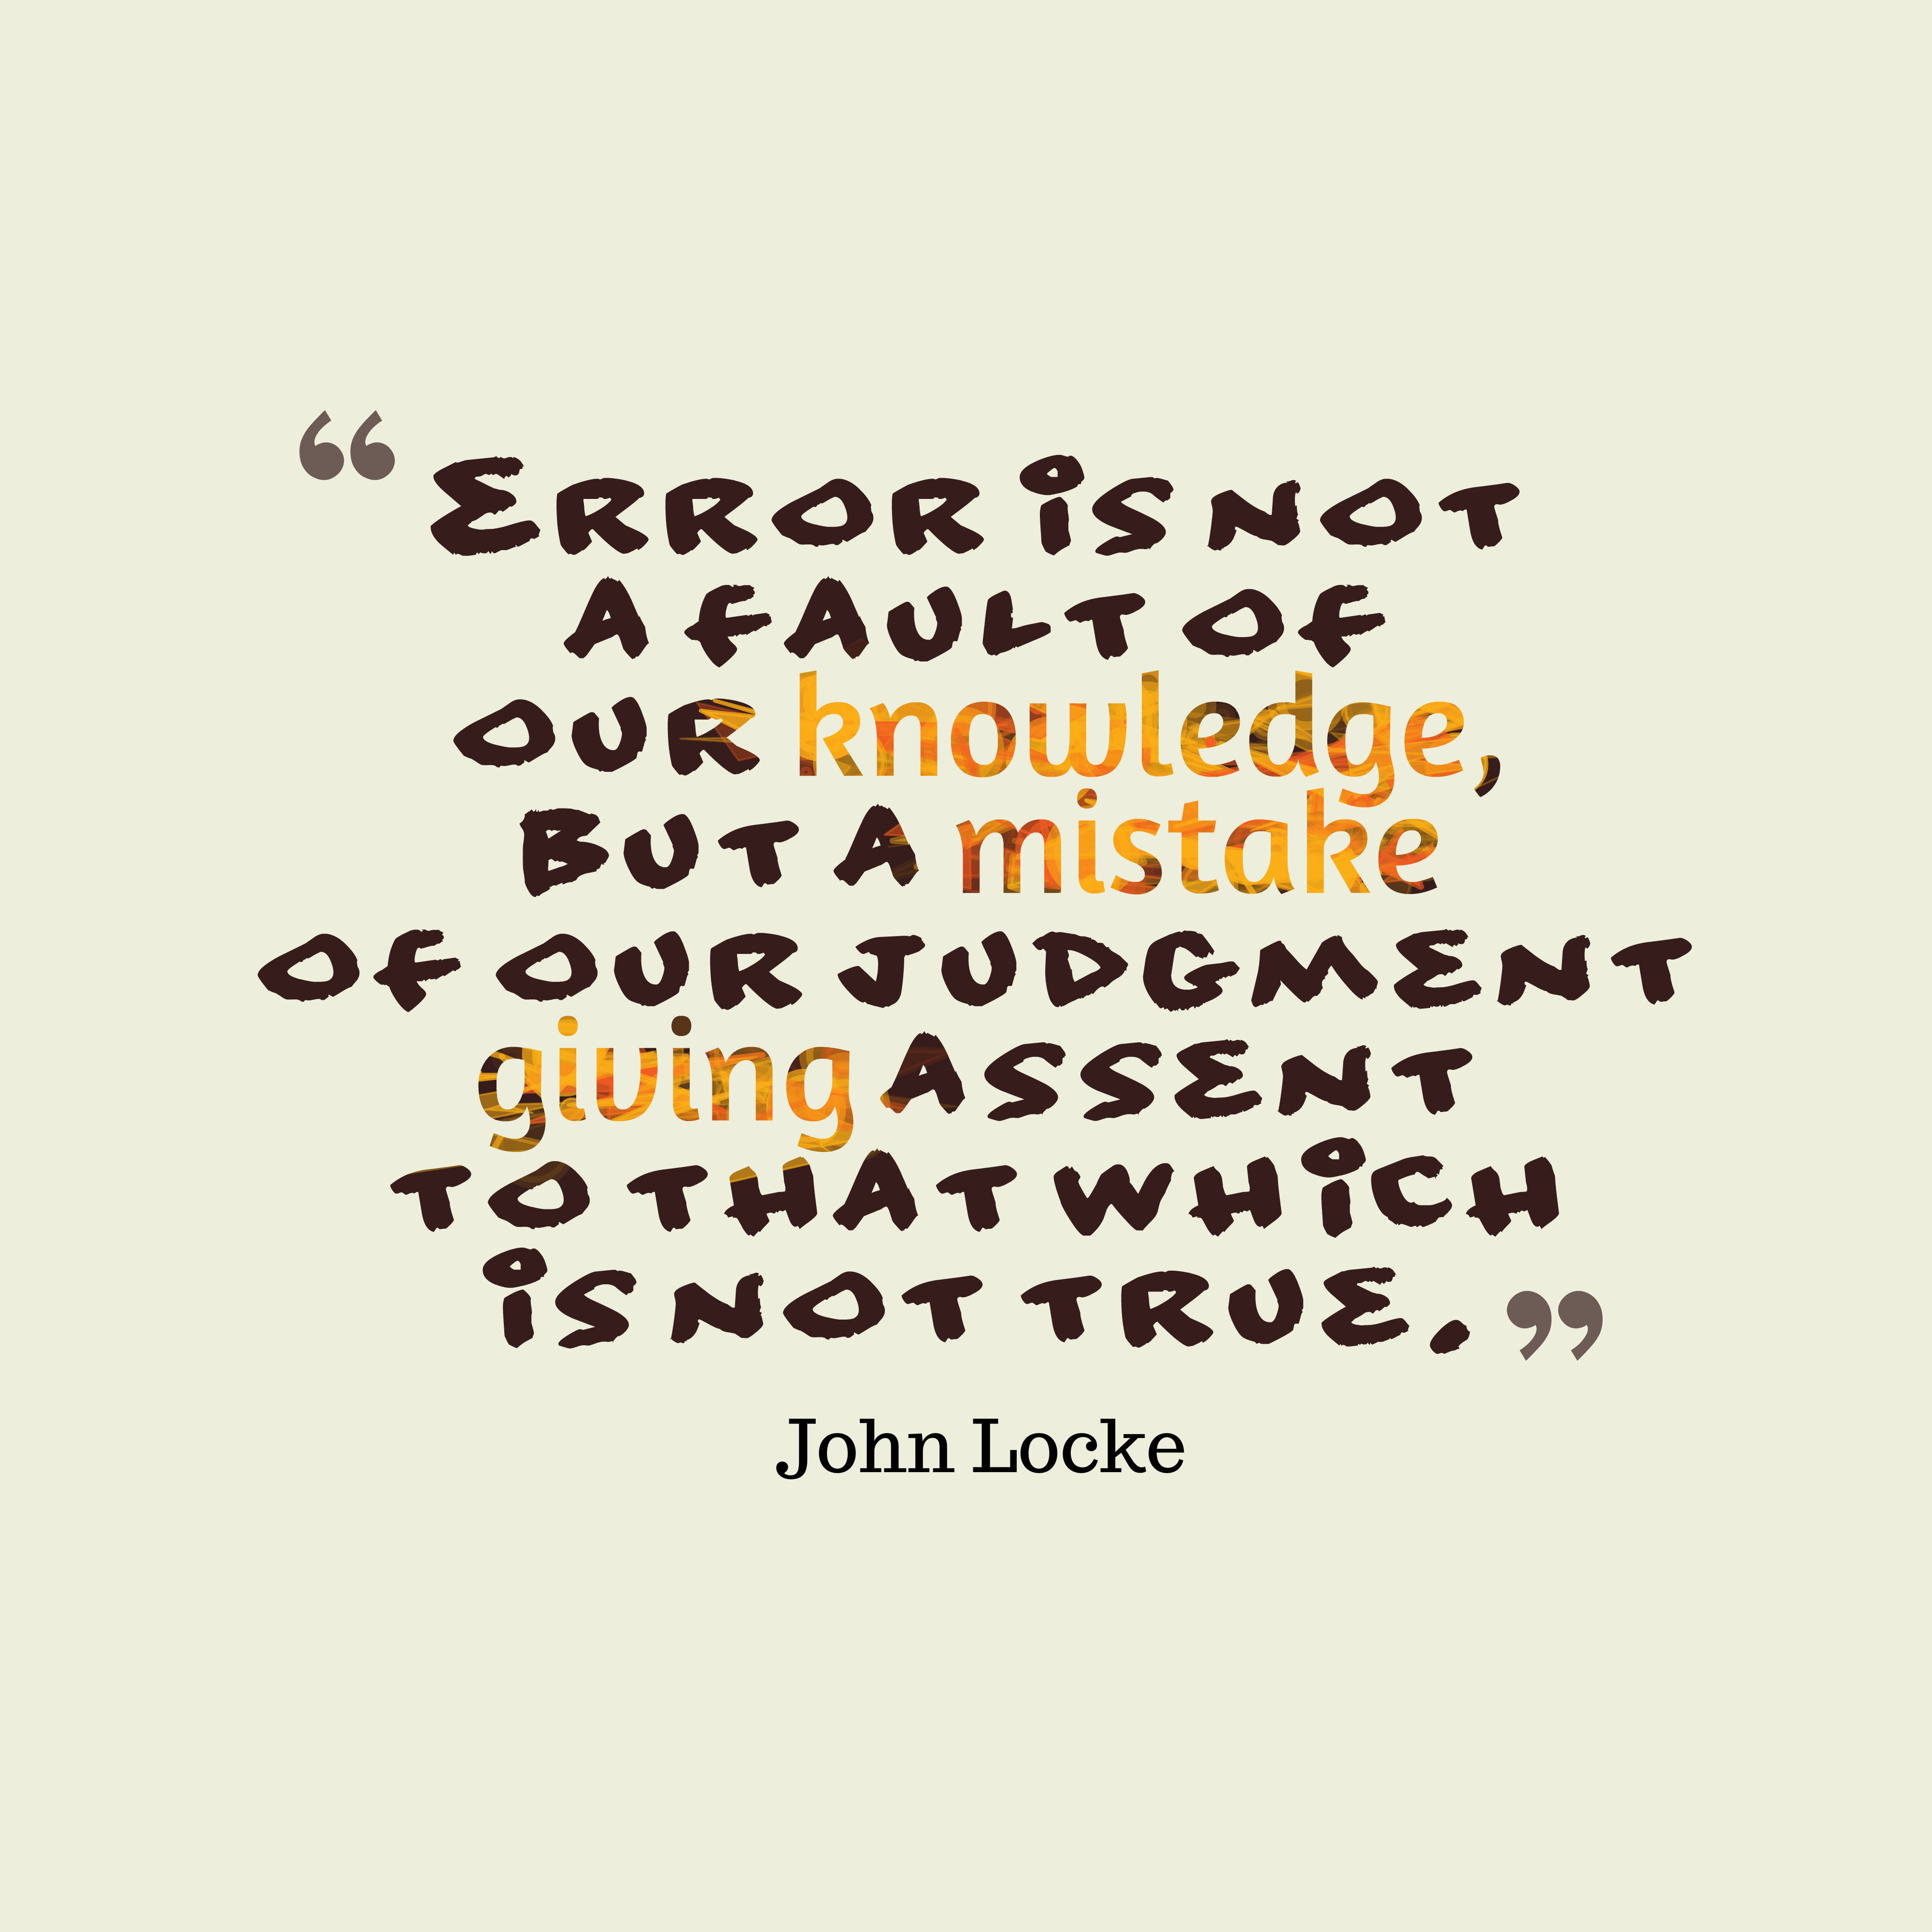 Quotes image of Error is not a fault of our knowledge, but a mistake of our judgment giving assent to that which is not true.